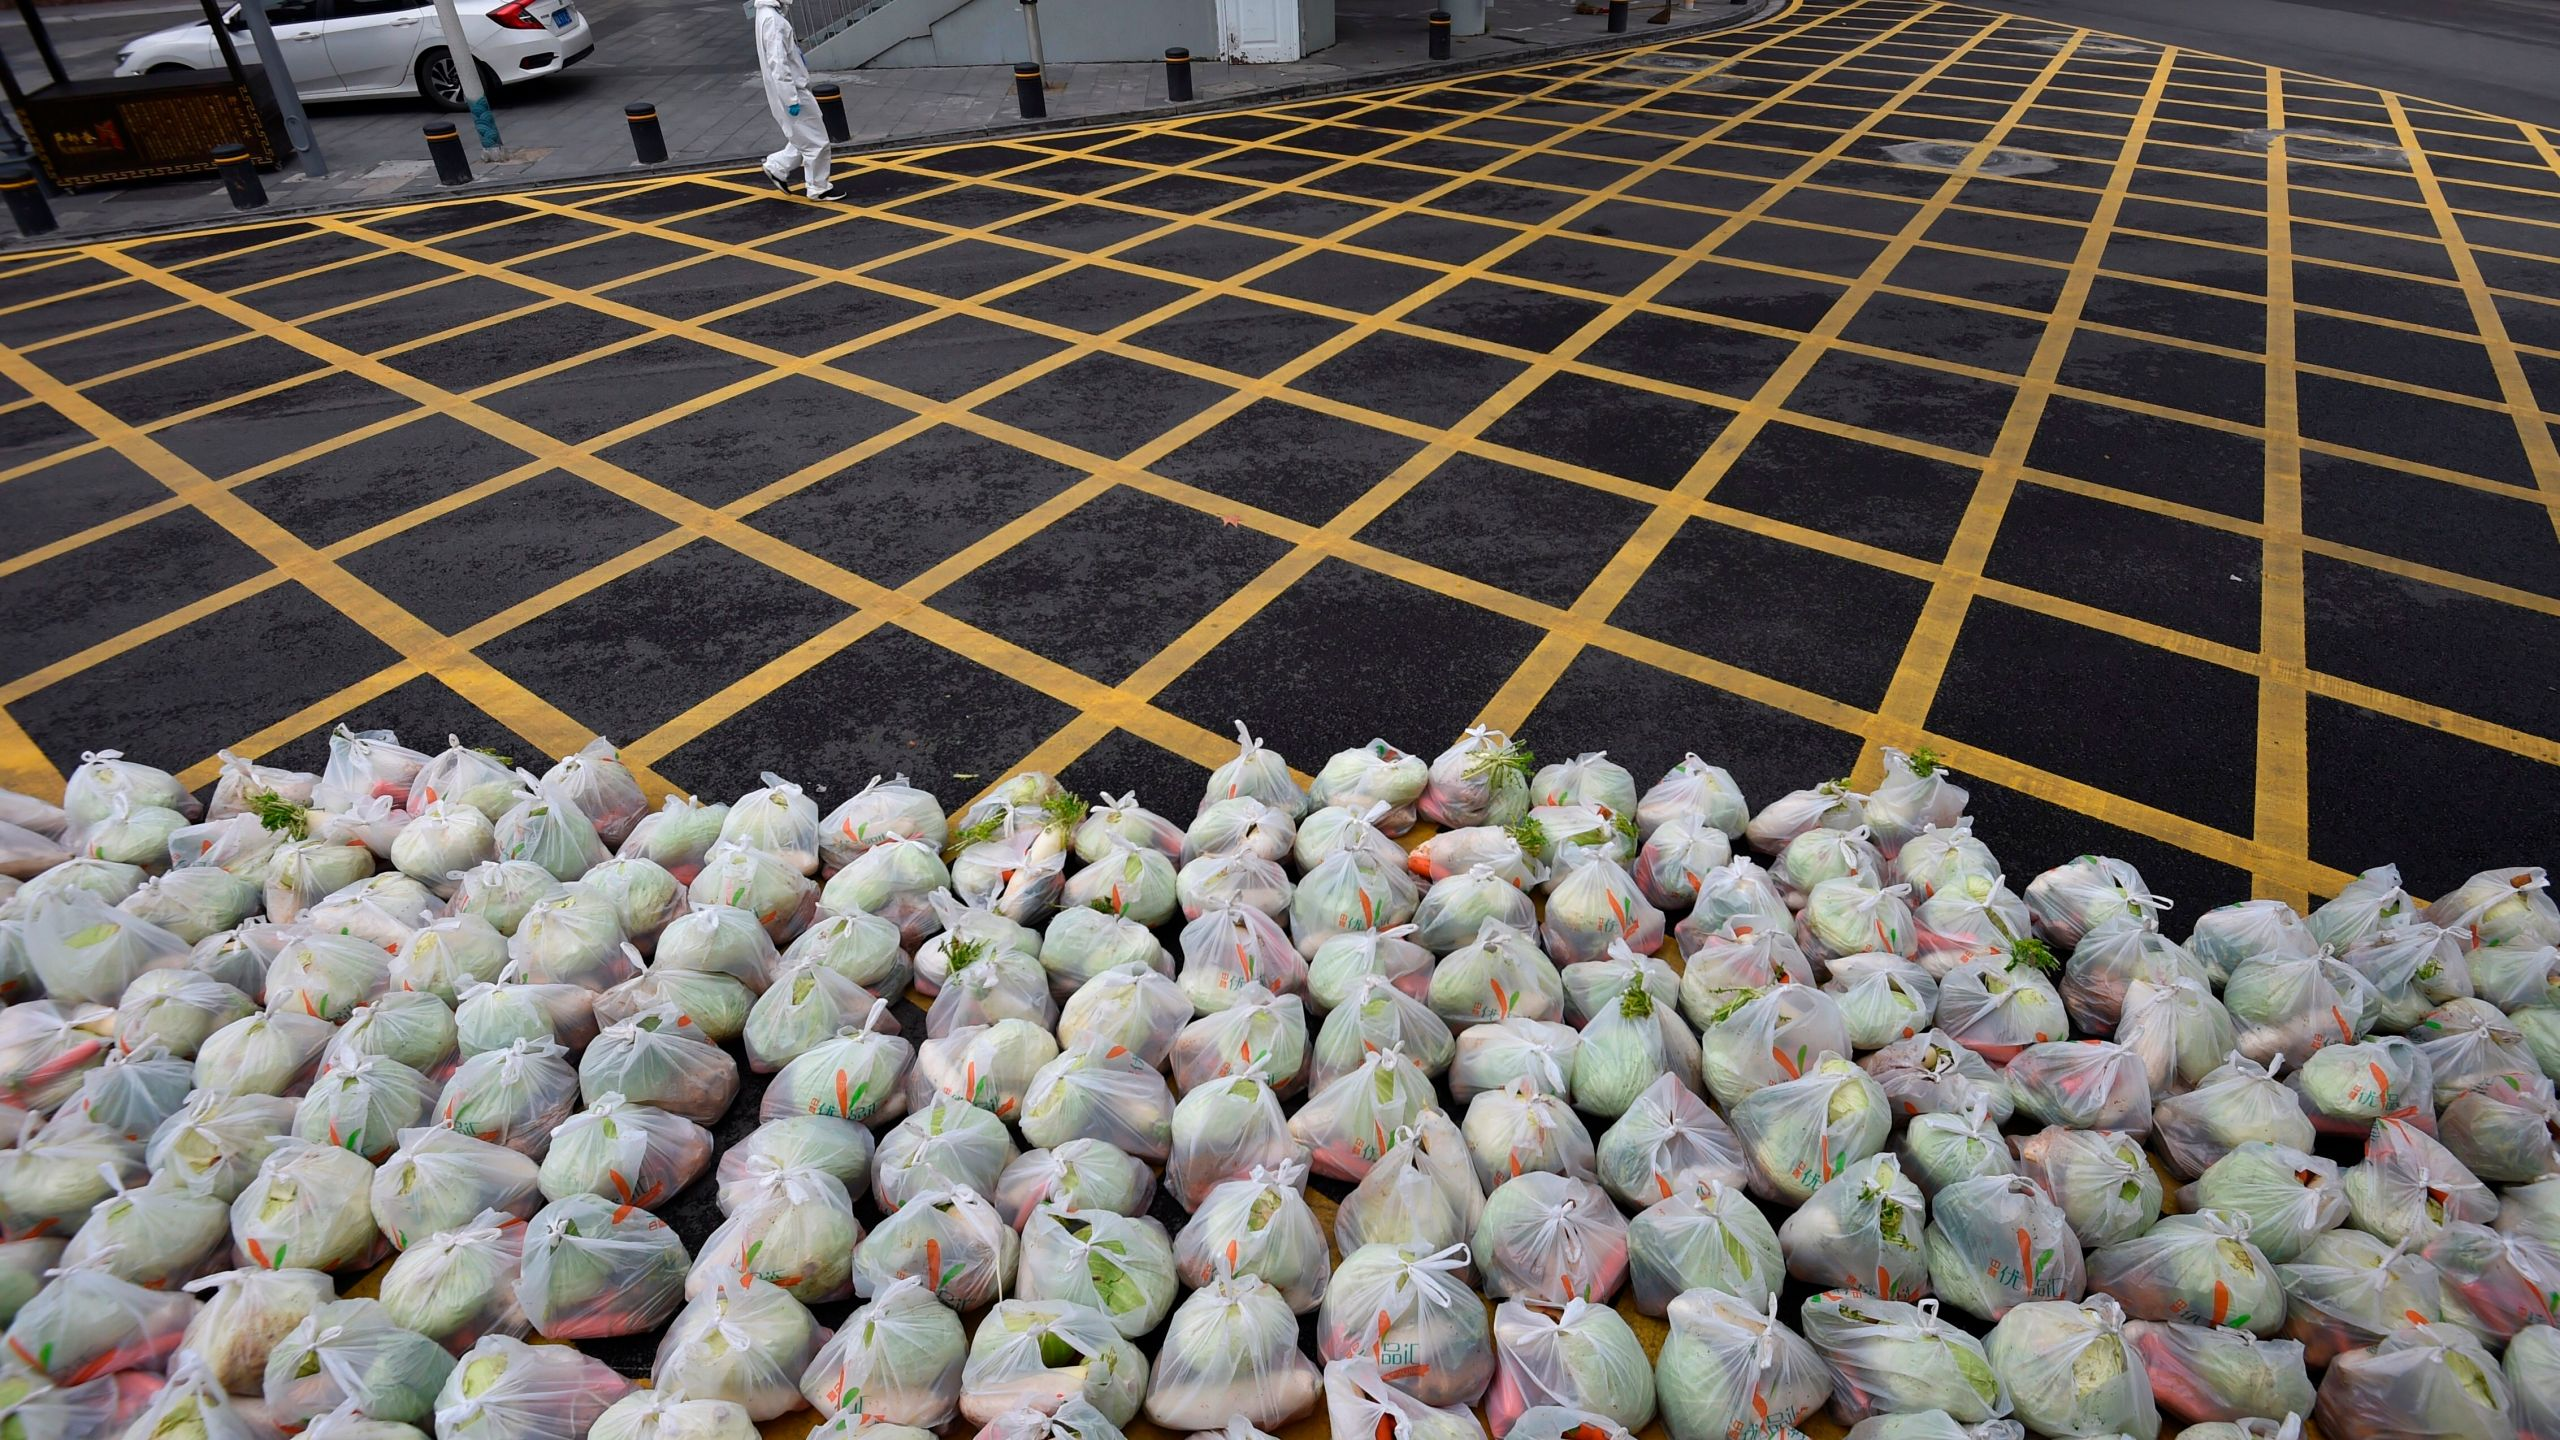 A man wearing protective clothing as a preventive measure against the COVID-19 coronavirus walks past bags of vegetables being prepared for delivery on an almost empty street in Wuhan, in China's central Hubei province on Feb. 26, 2020. (Credit: STR/AFP via Getty Images)